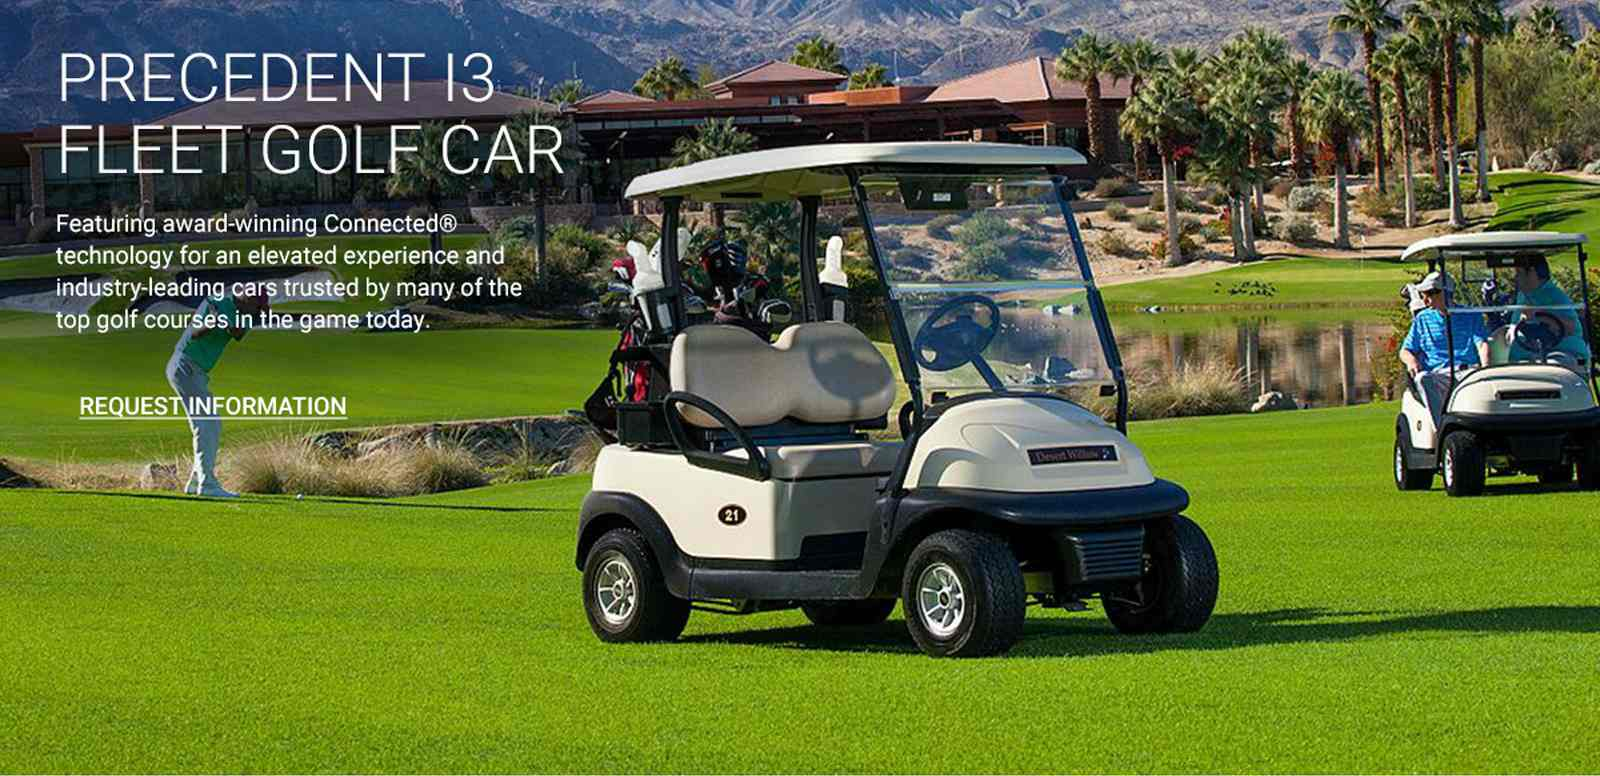 Club Car's Precedent i3 golf car